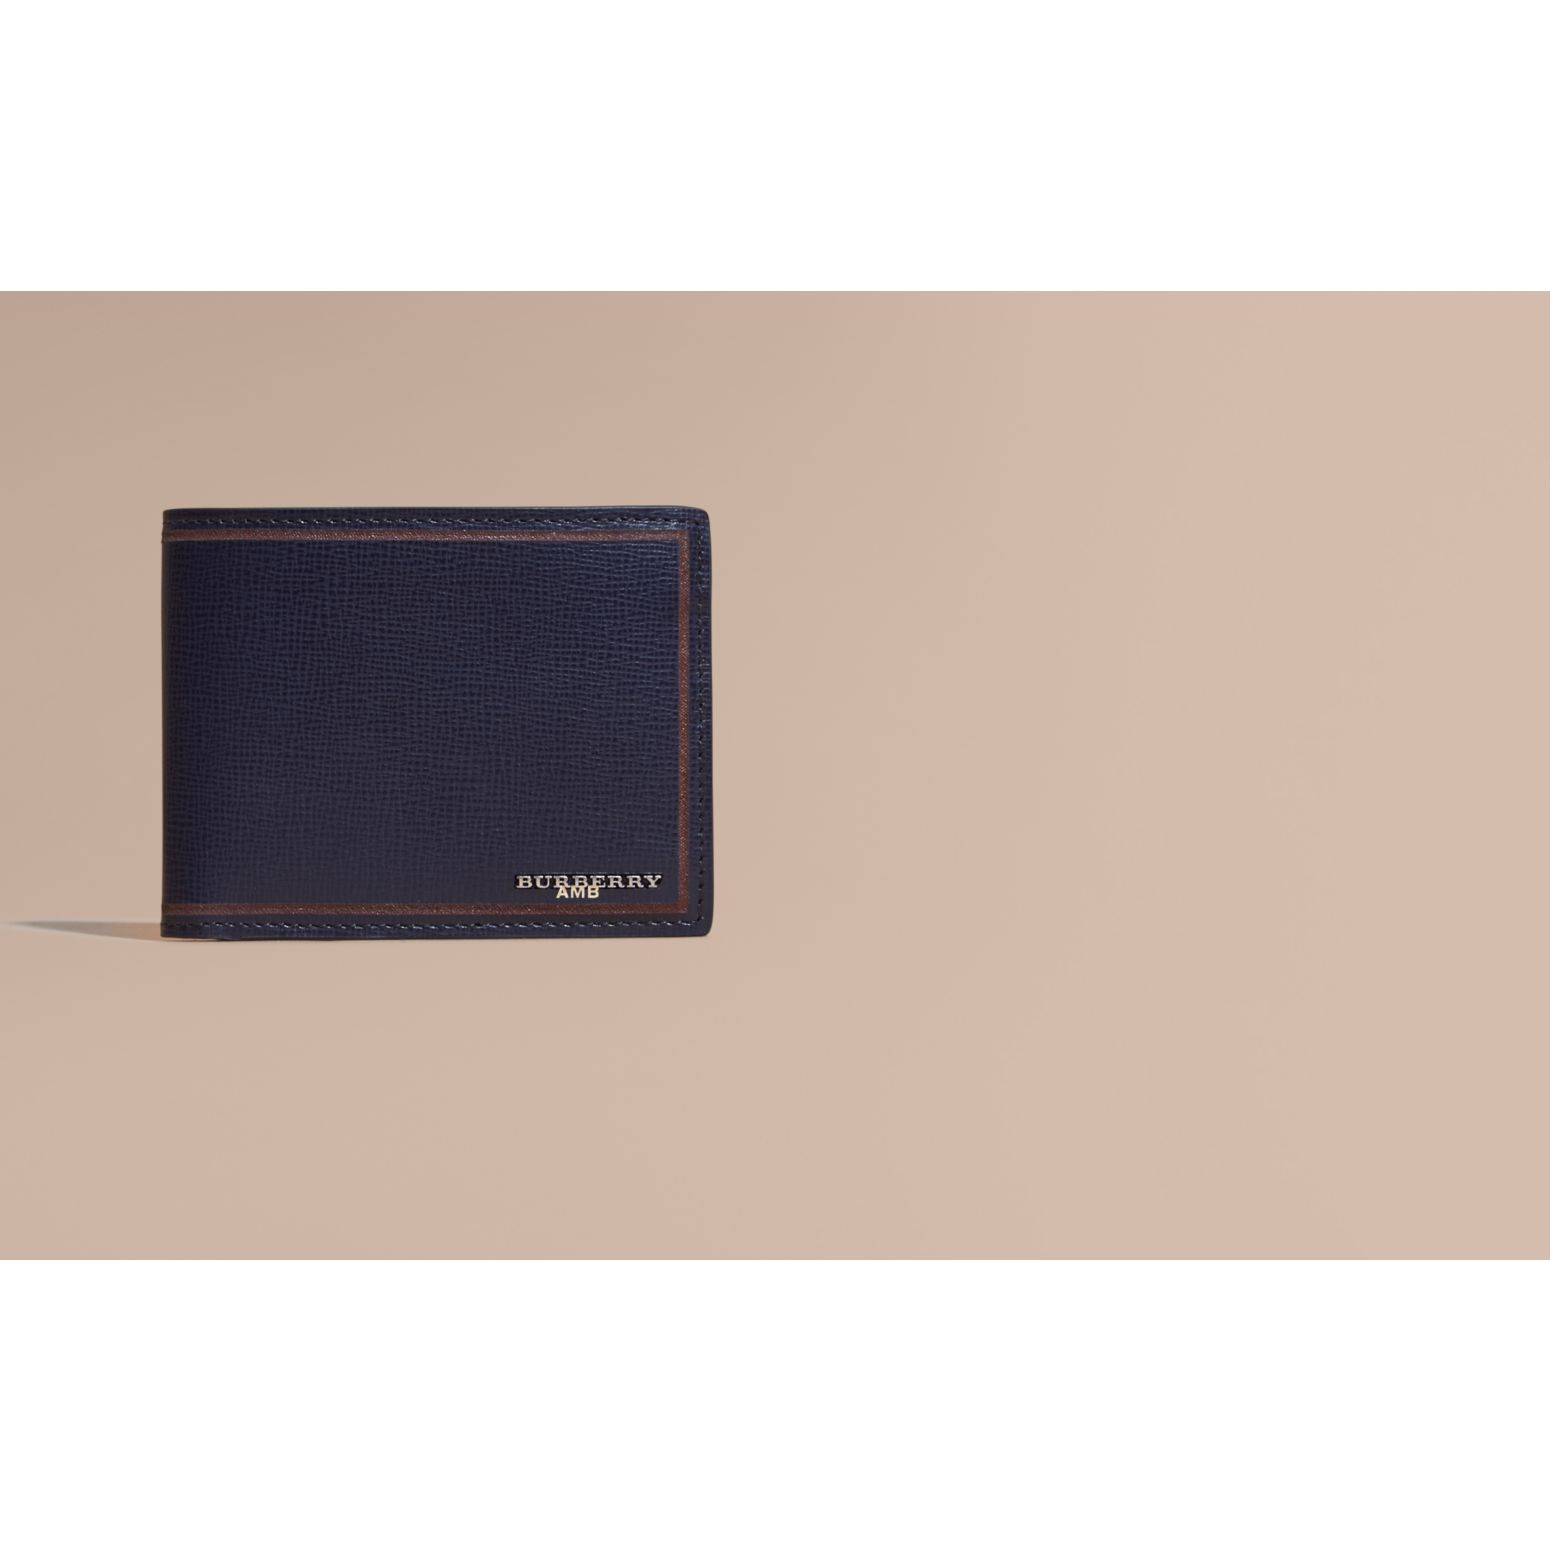 Border Detail London Leather Folding Wallet Dark Navy - gallery image 2